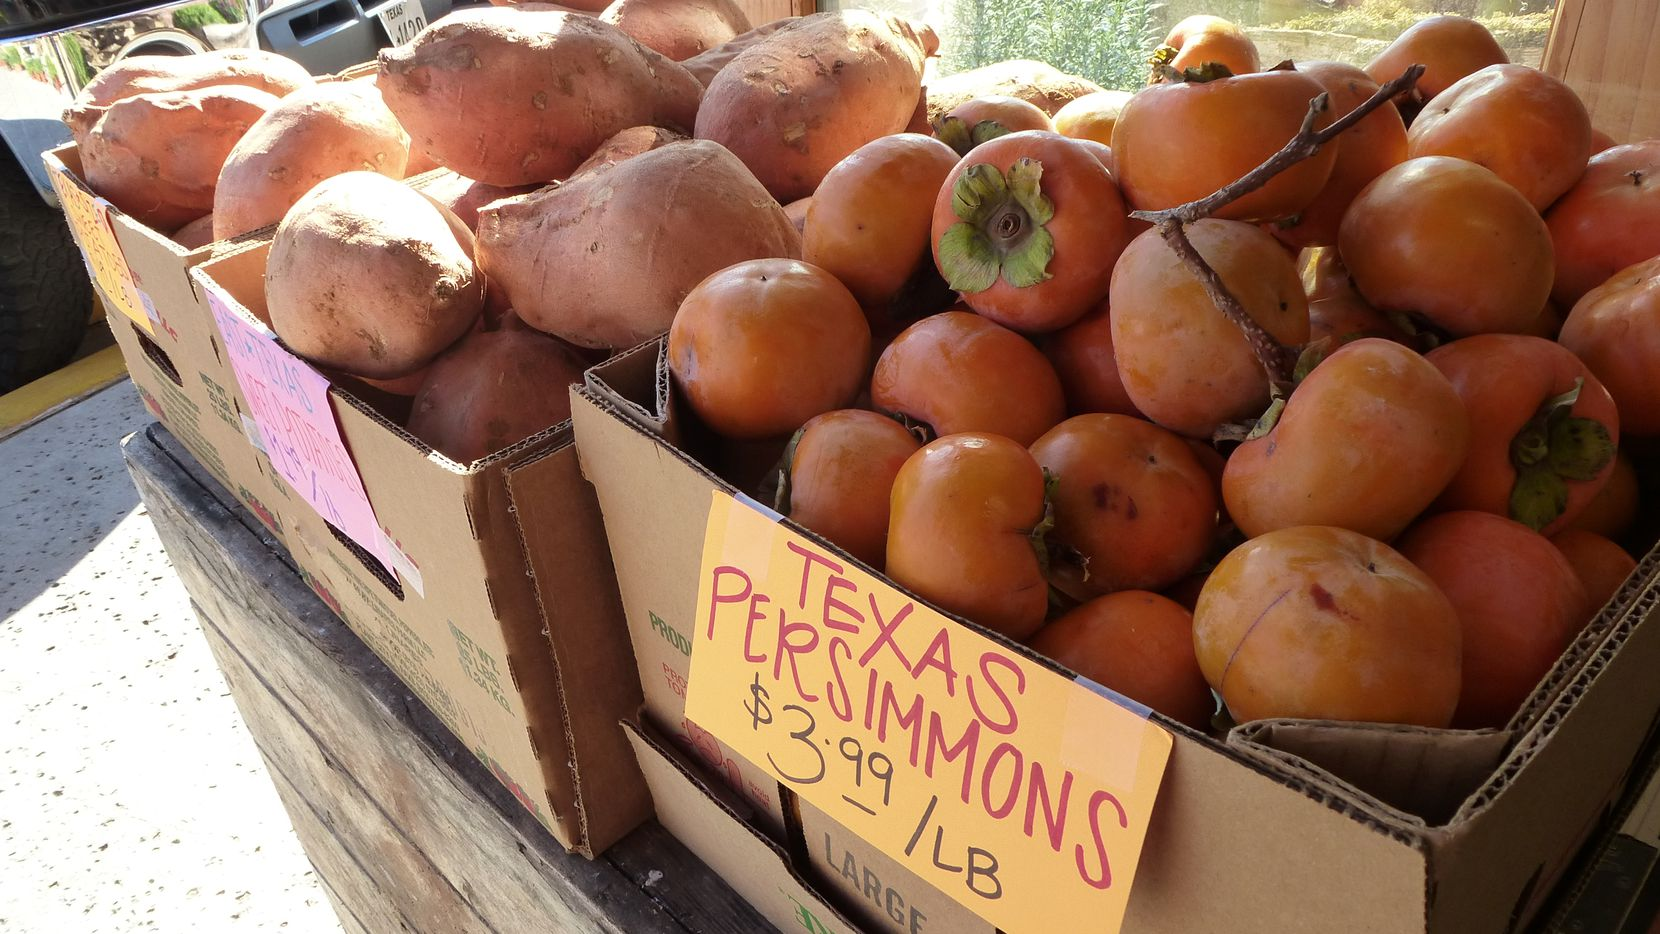 The persimmons and sweet potatoes at the Grapevine Farmers market are from East Texas farms.